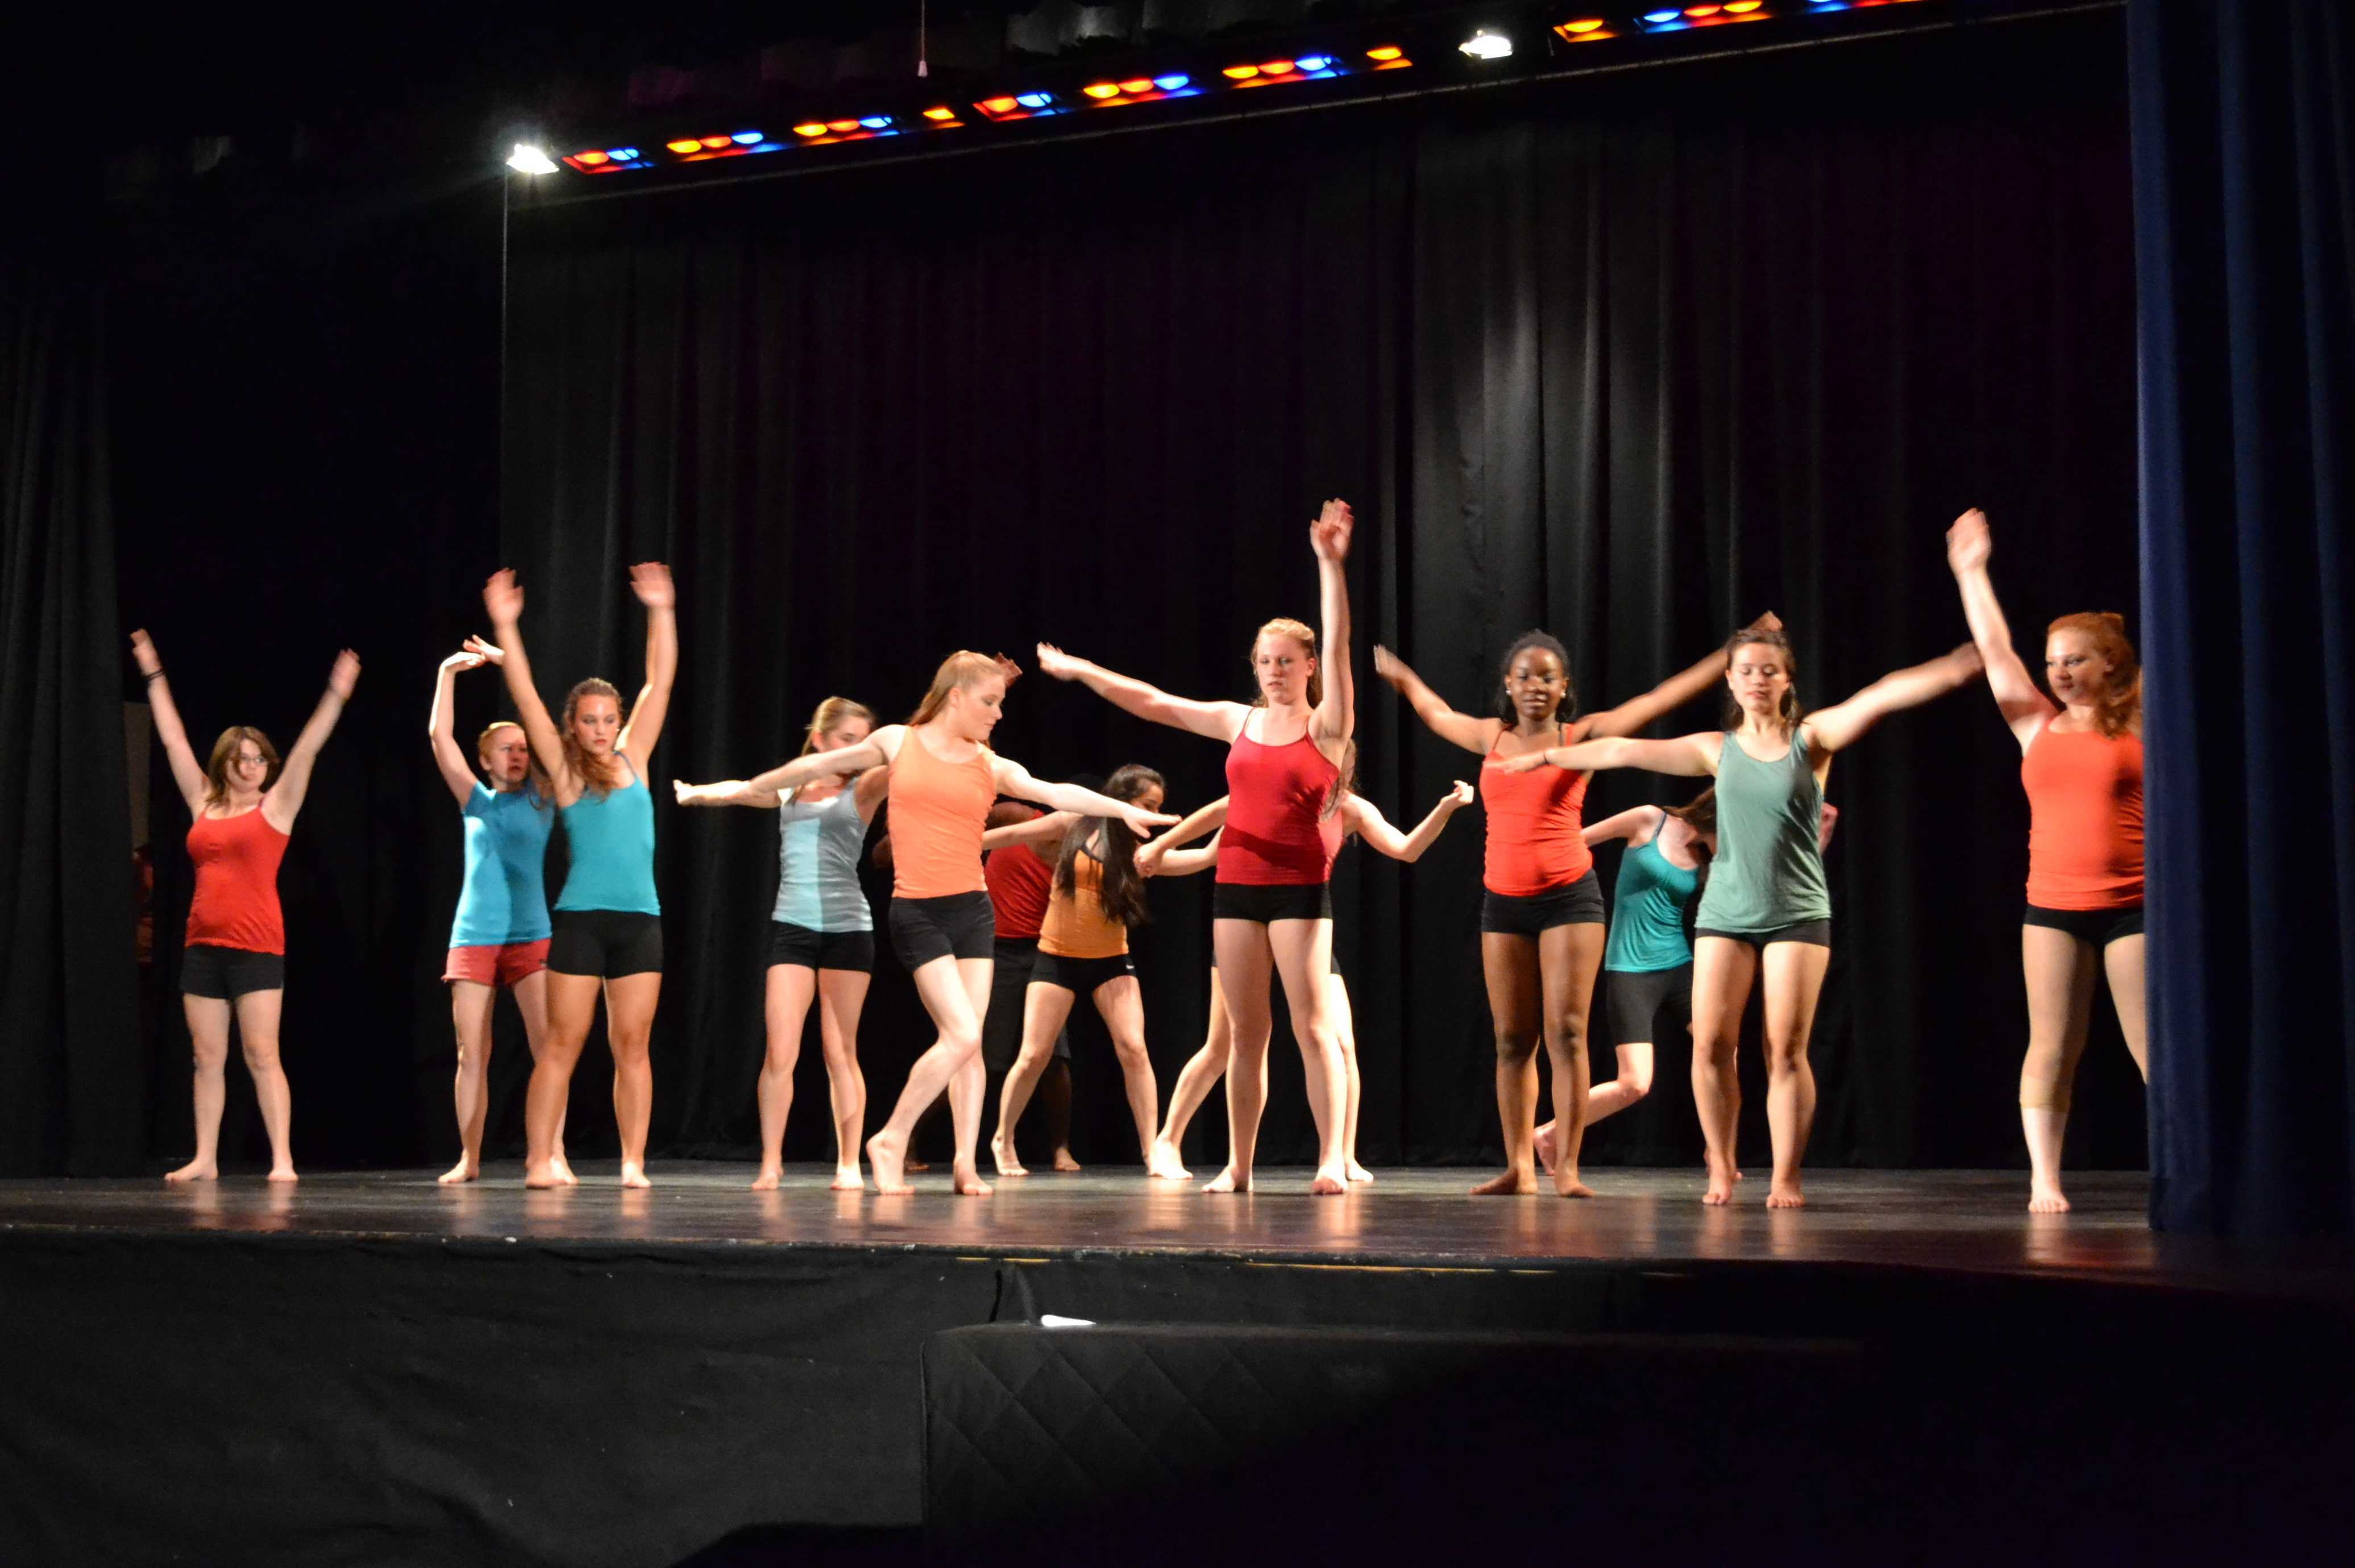 Dance Body performs Esto Es Dance Body in their end-of-the-year concert.